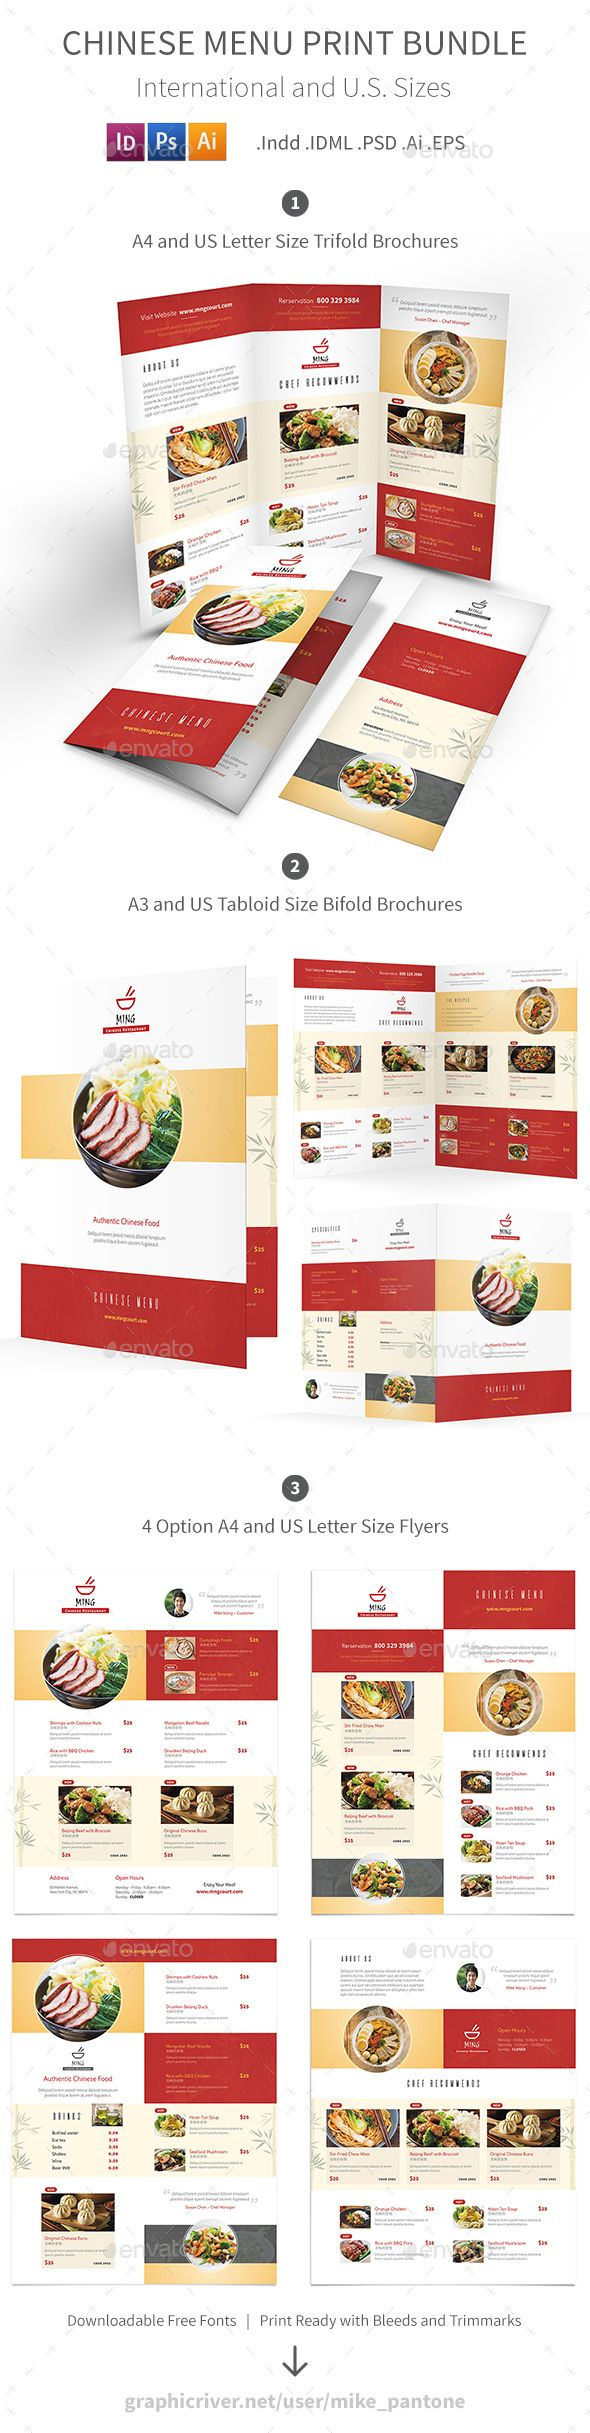 chinese restaurant menu print bundle pinterest food menu print